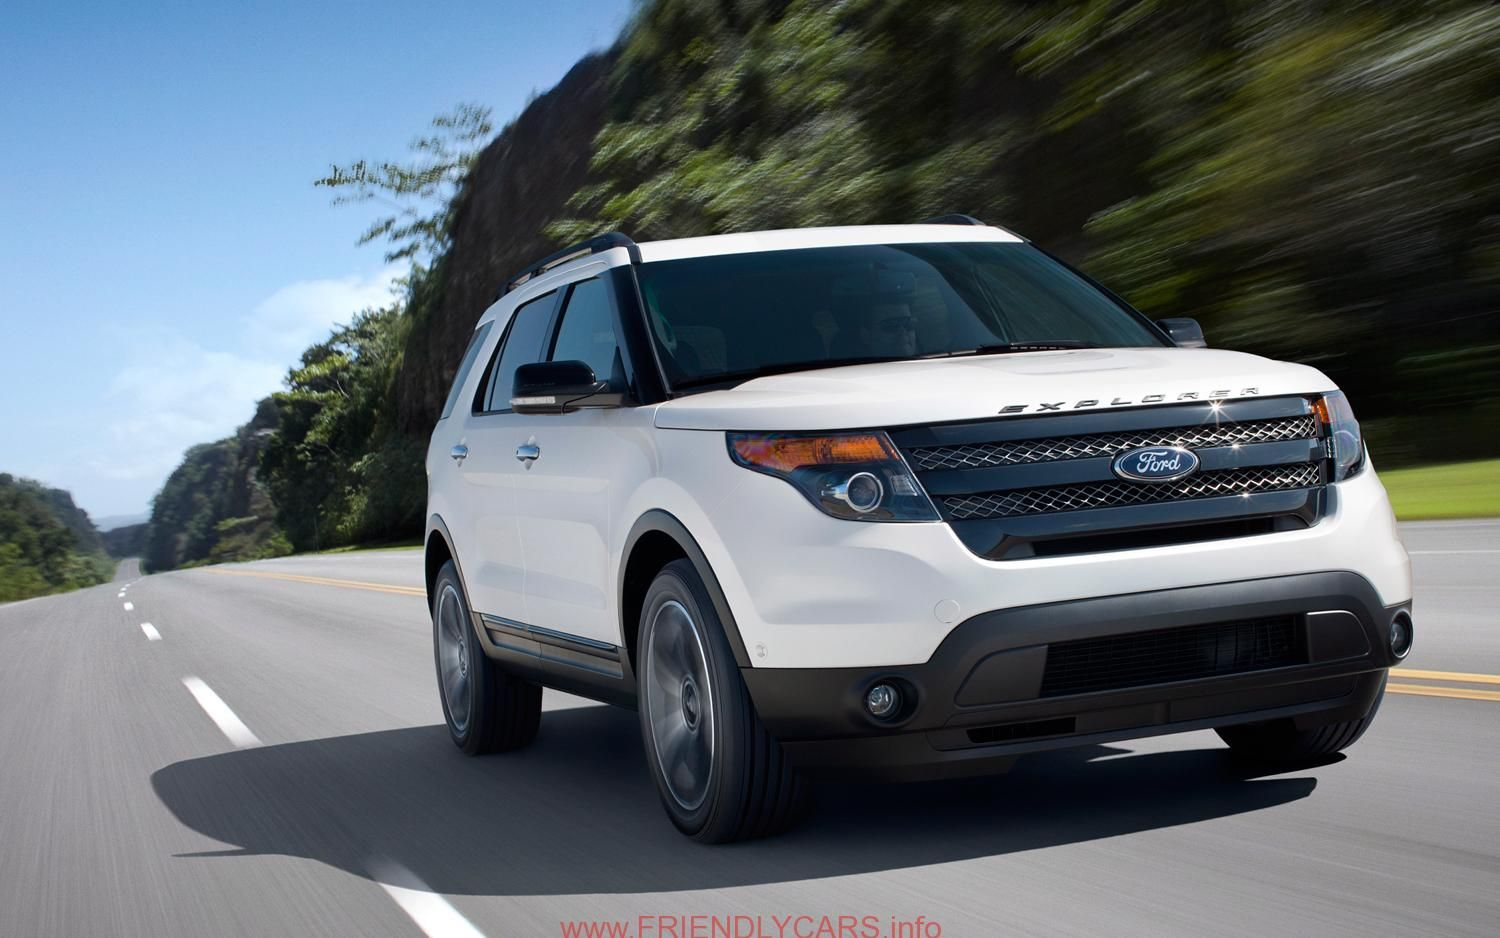 awesome ford explorer 2013 grey car images hd 2013 Ford